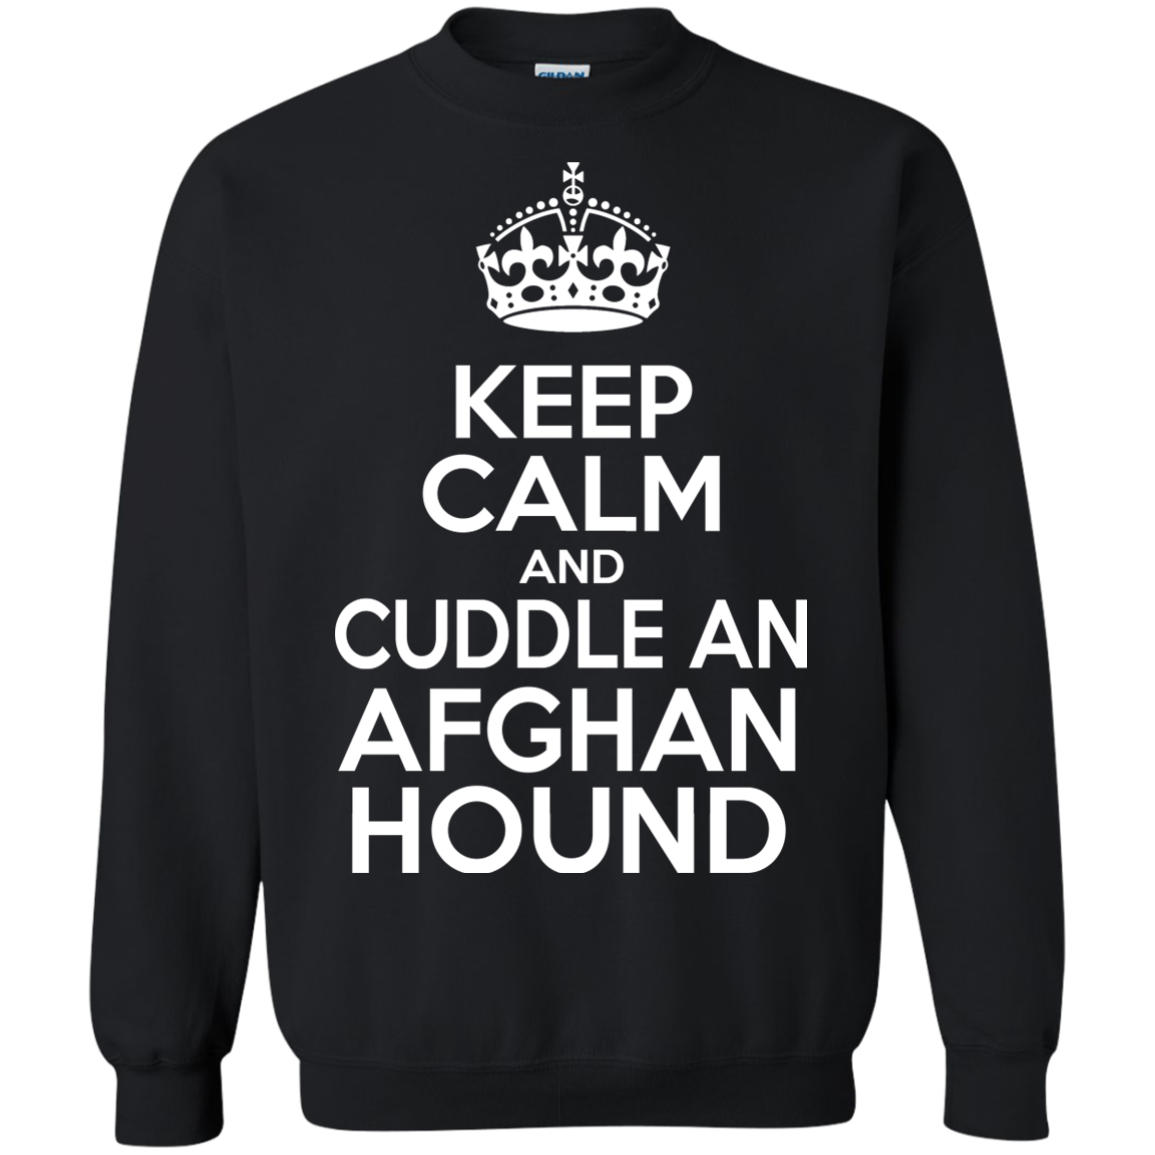 Keep Calm And Cuddle An Afghan Hound Sweatshirts